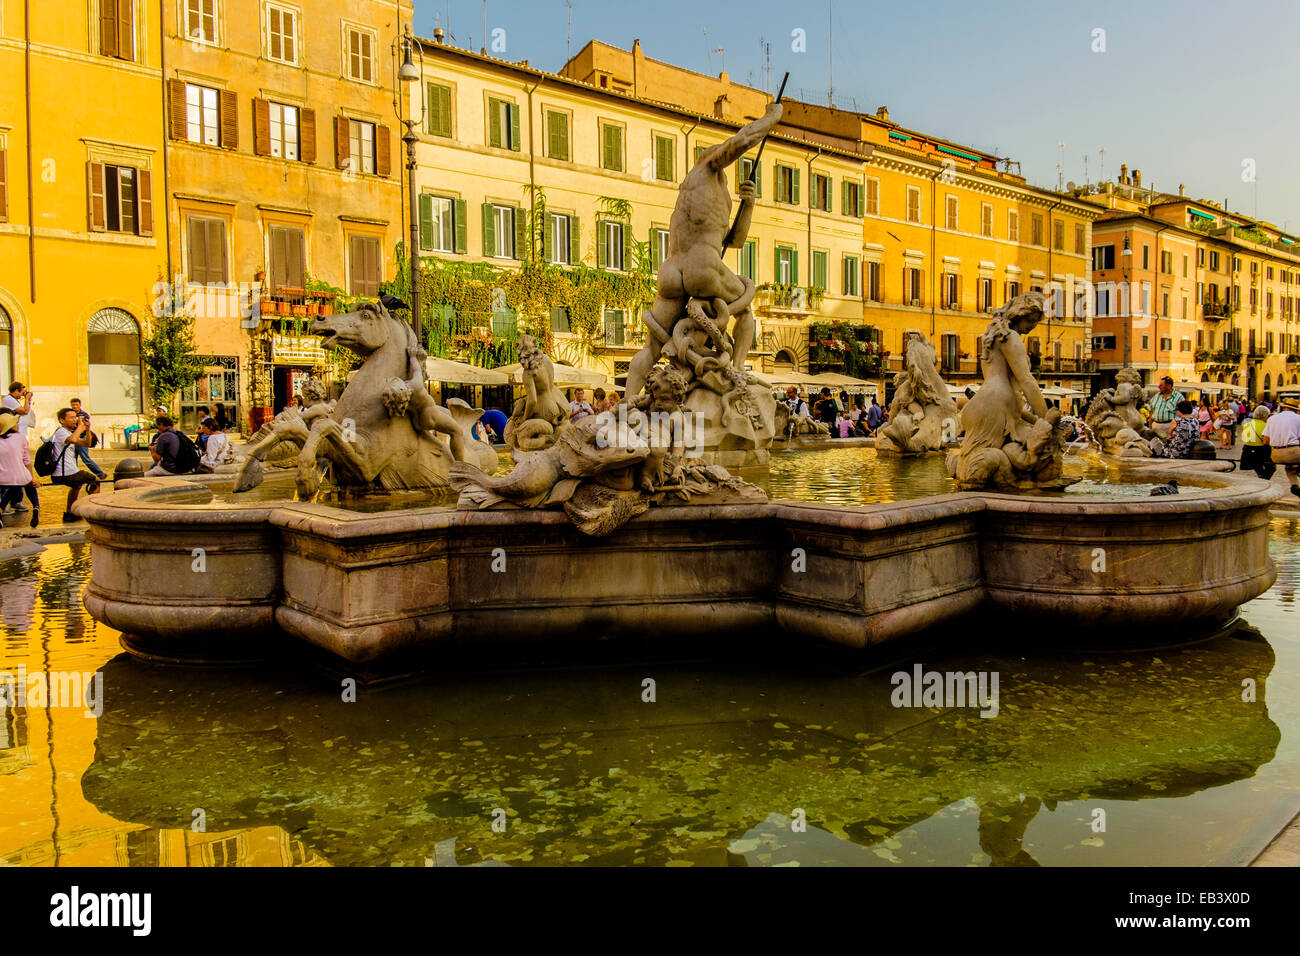 Fontana del Nettuno is a fountain located at the north end of the Piazza Navona in Rome Italy - Stock Image